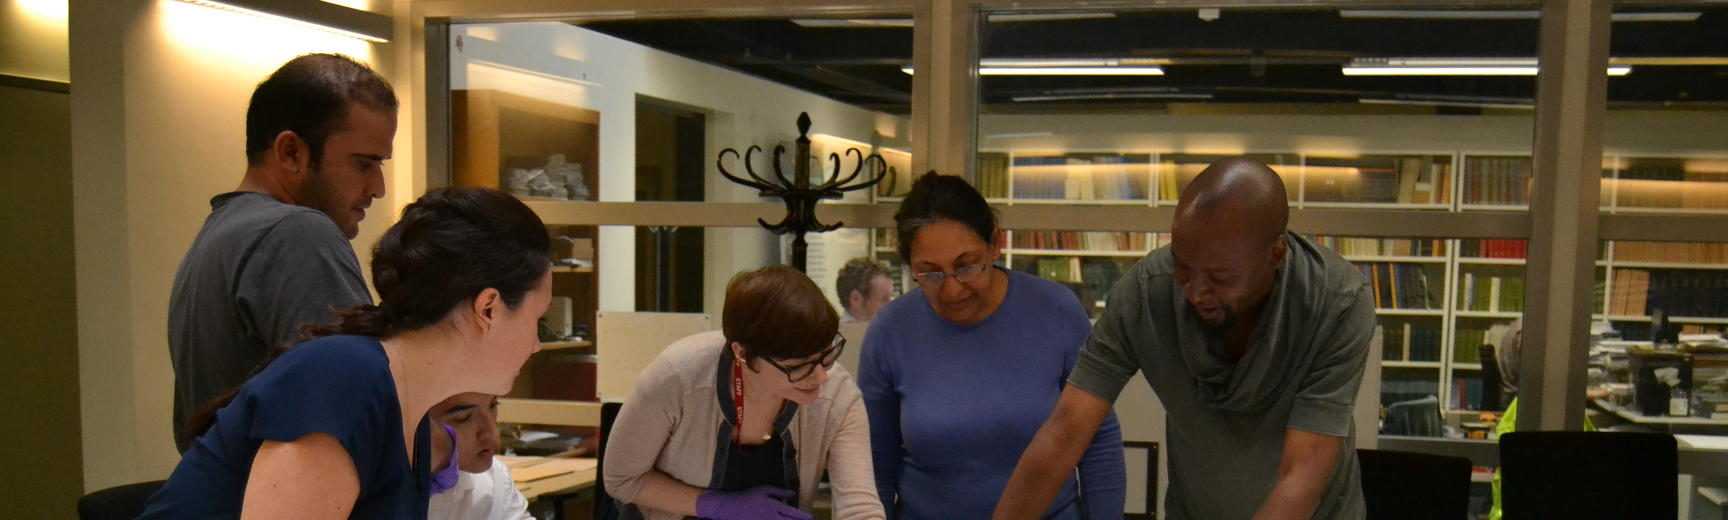 2 collections officer abigael flack shows volunteers a textile from syria